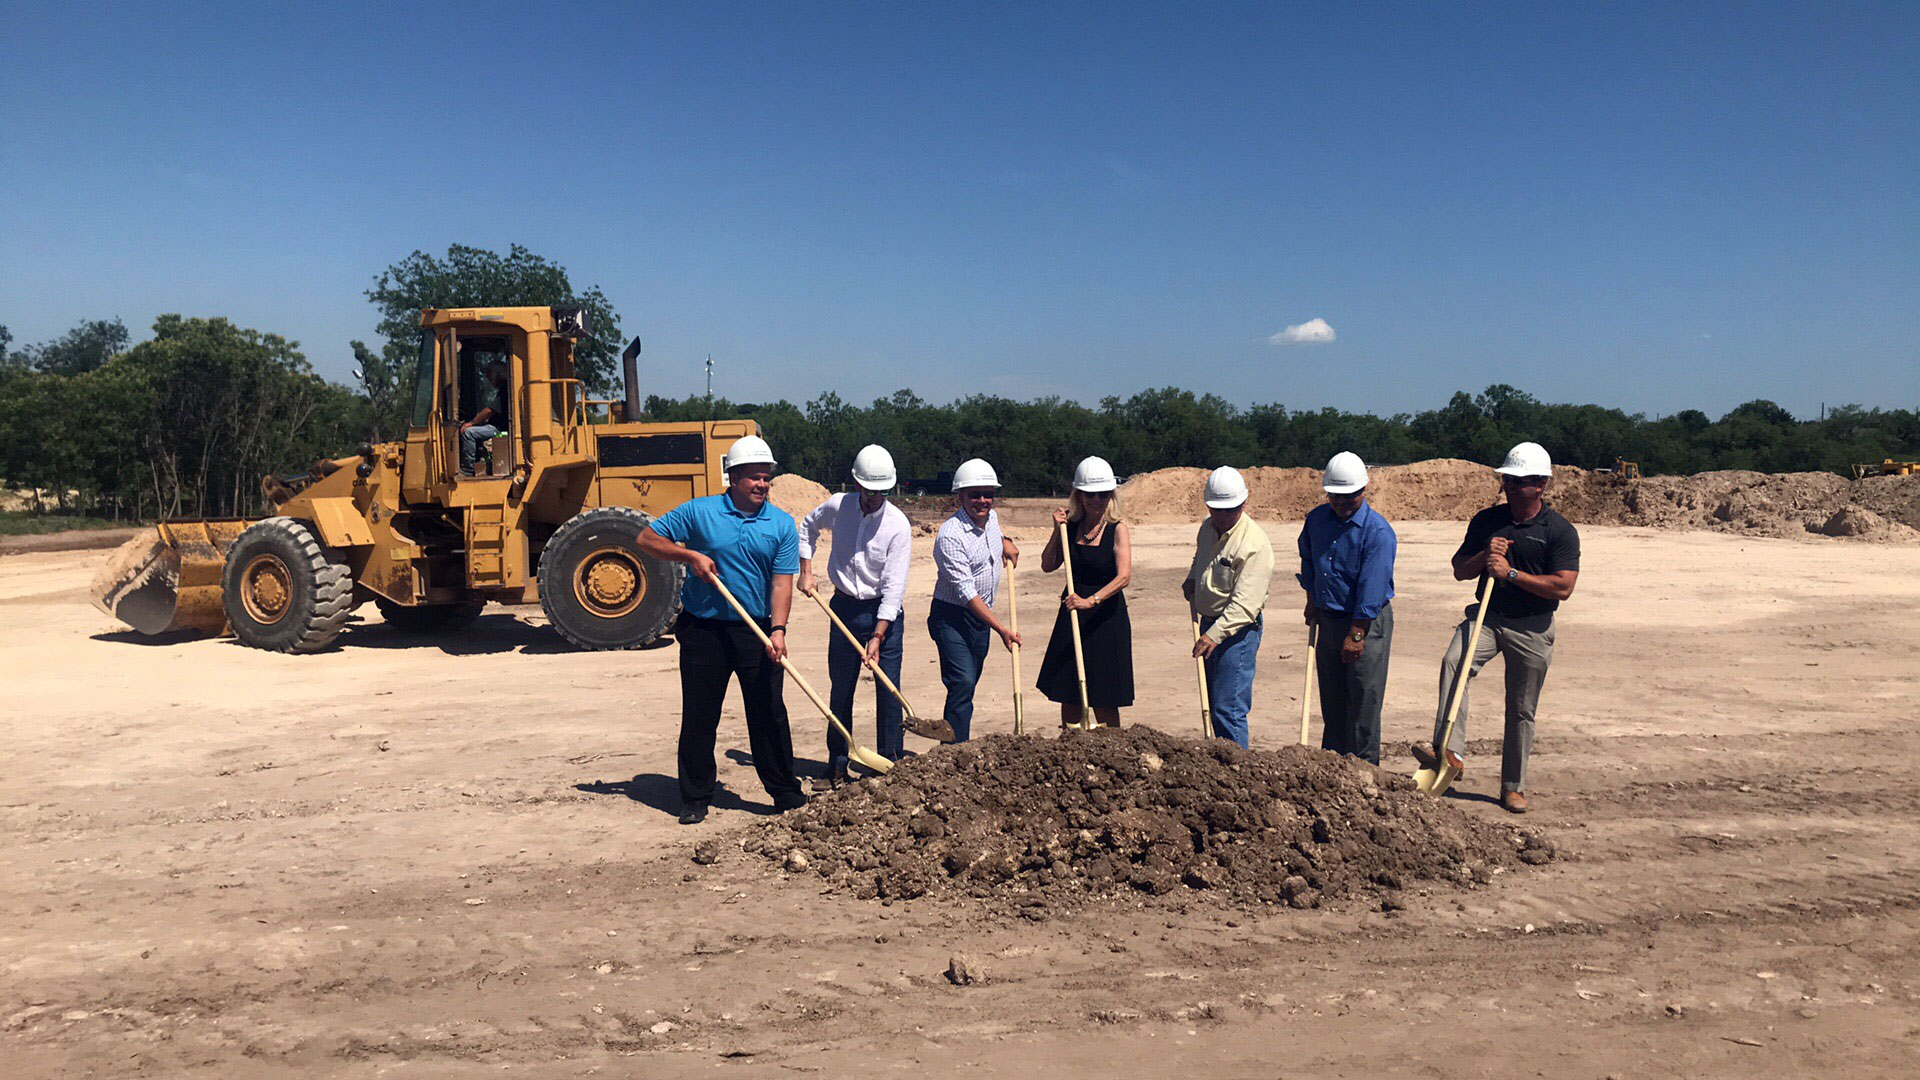 Groundbreaking for the new apartments off Rio Concho. San Angelo Mayor Brenda Gunter in the center. (LIVE! Photo/Joe Hyde)